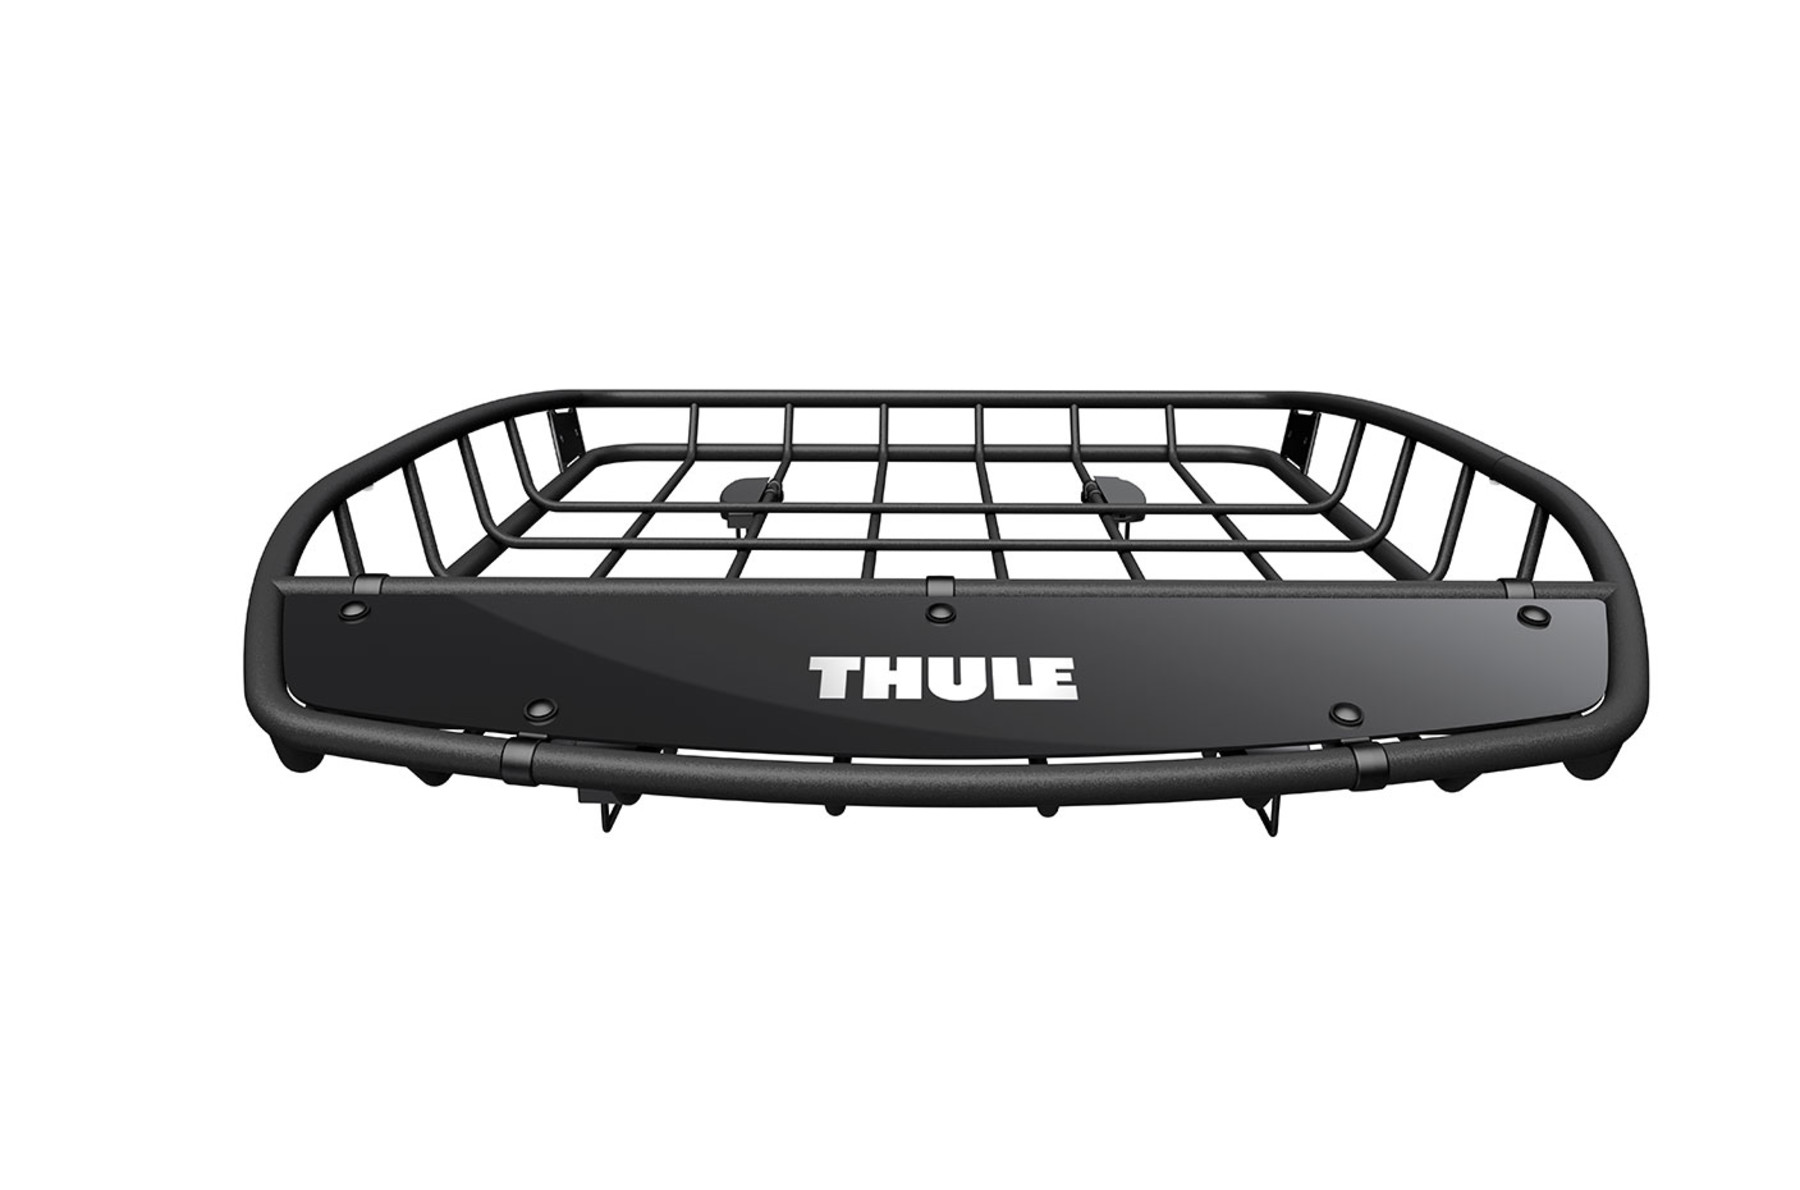 Thule Canyon 859XT car roof basket